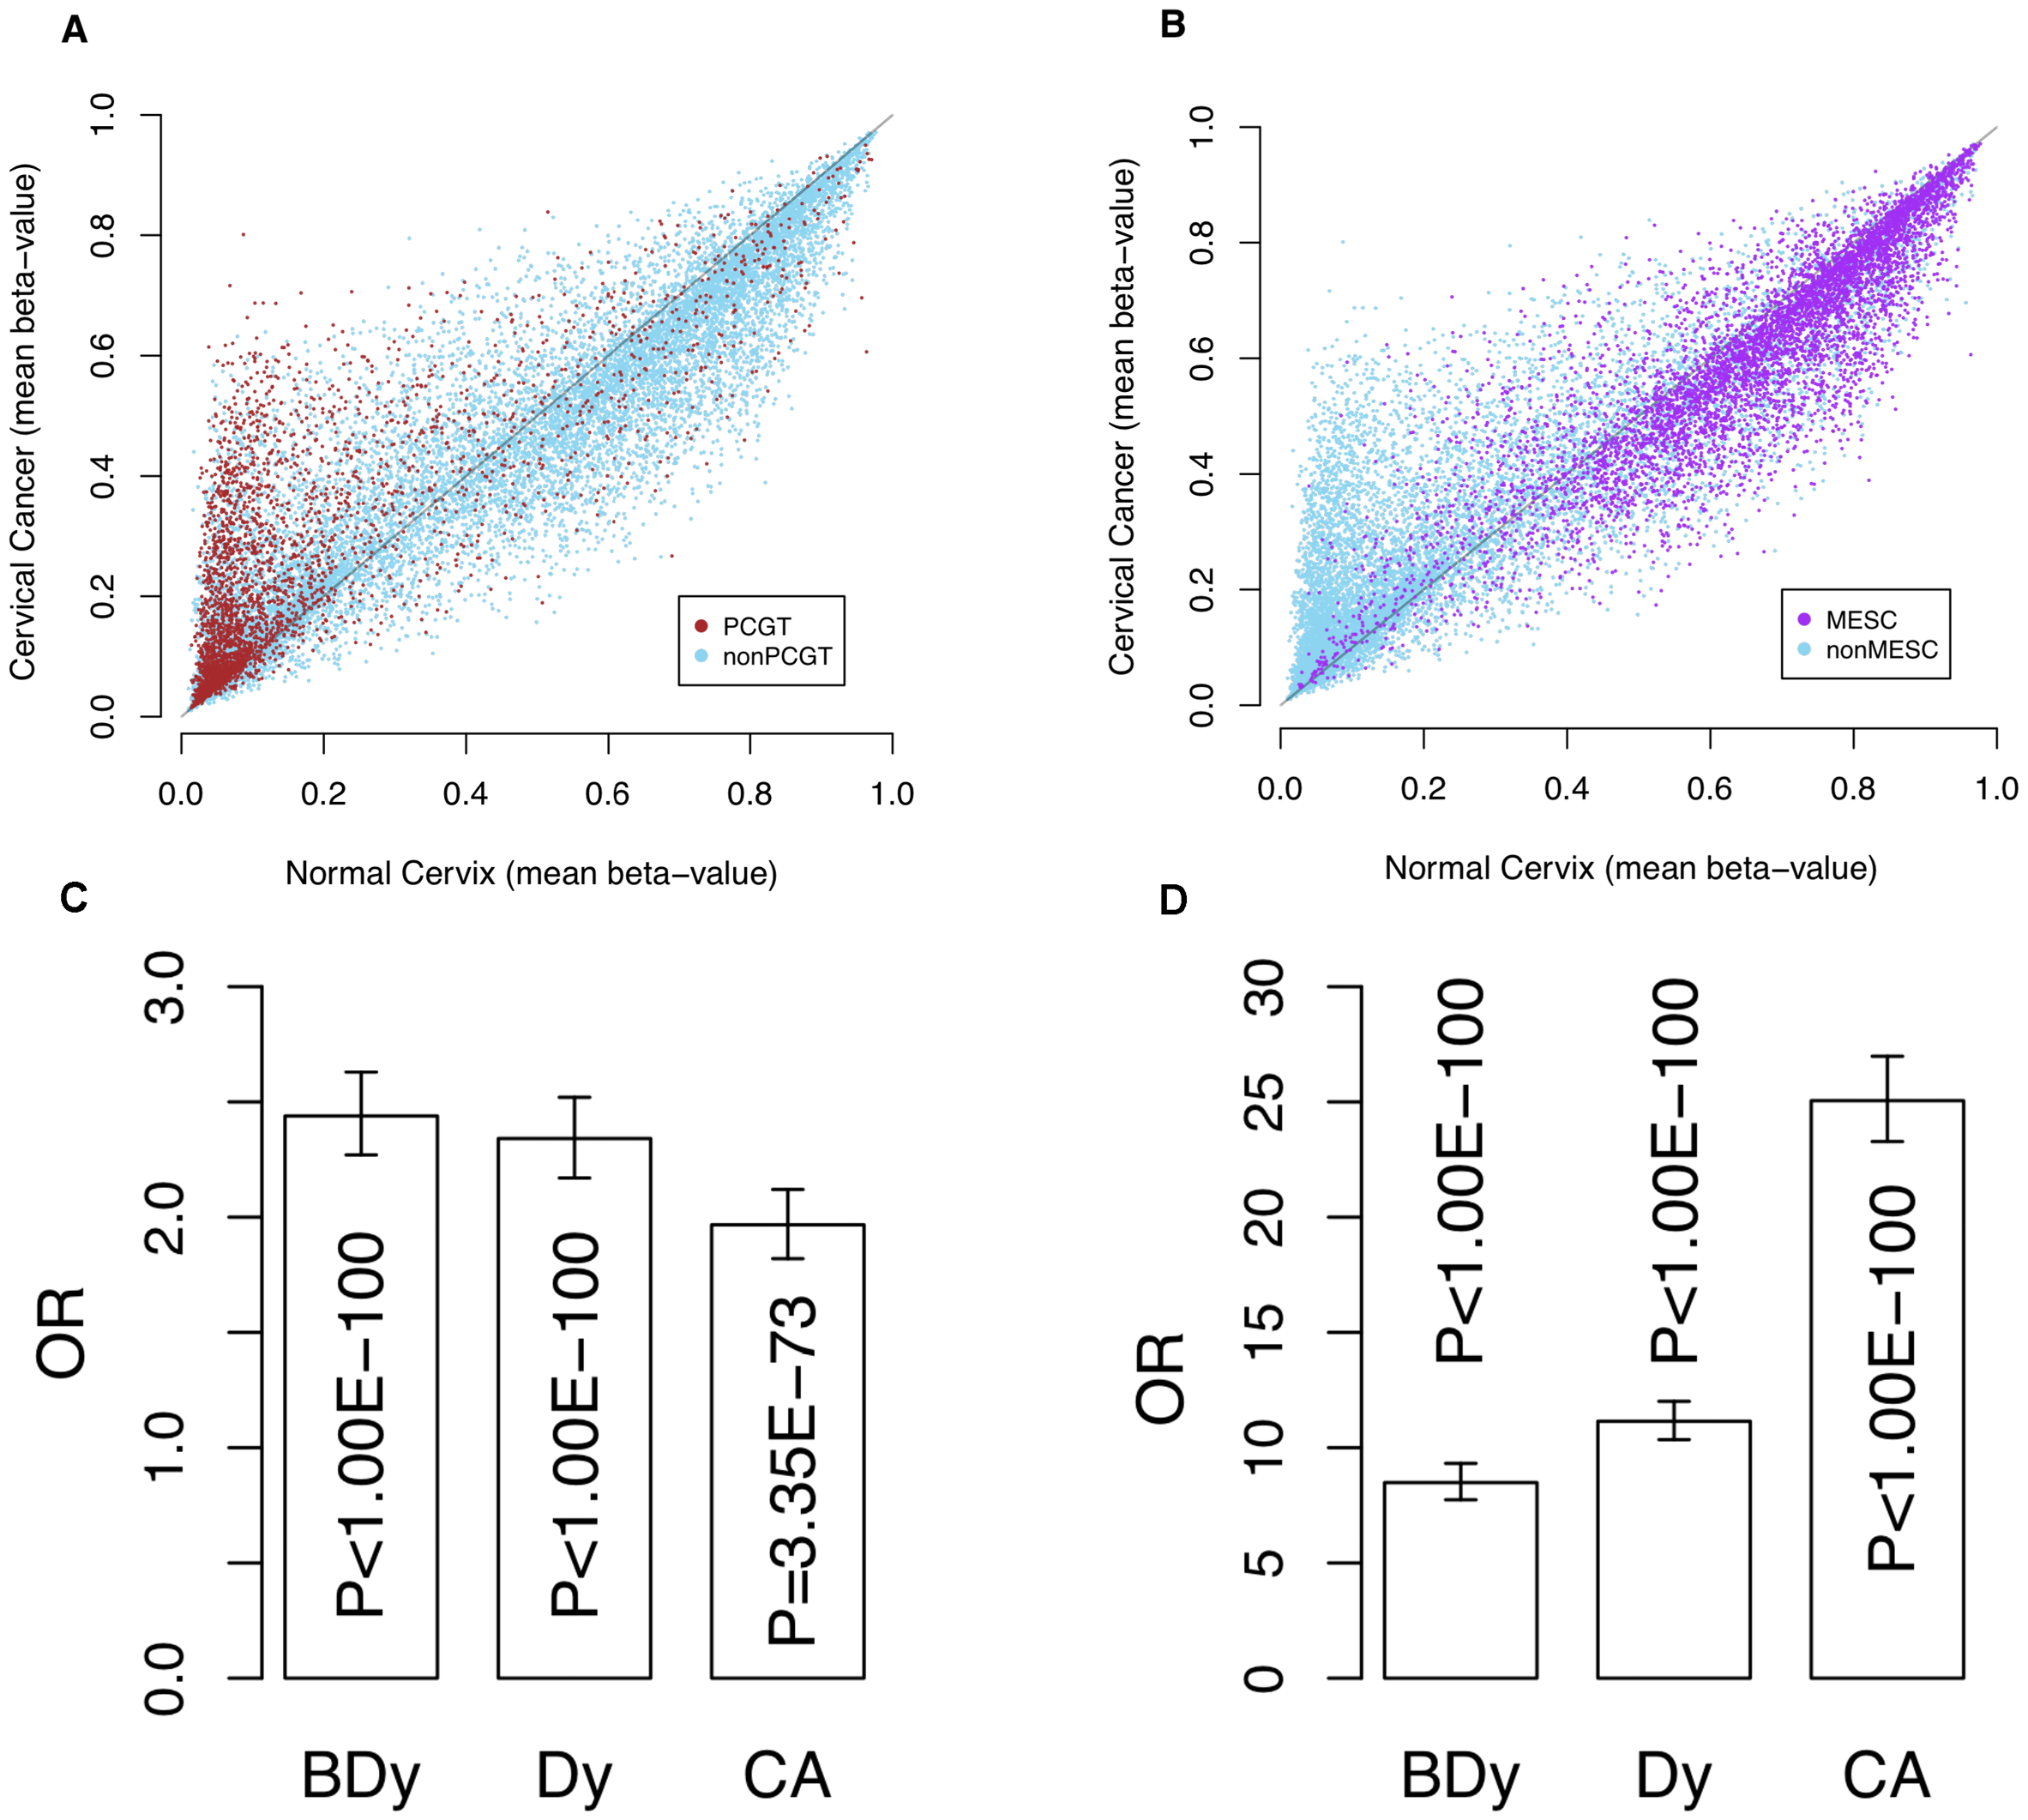 Methylation profile of PCGTs and MESCs in cervix data.